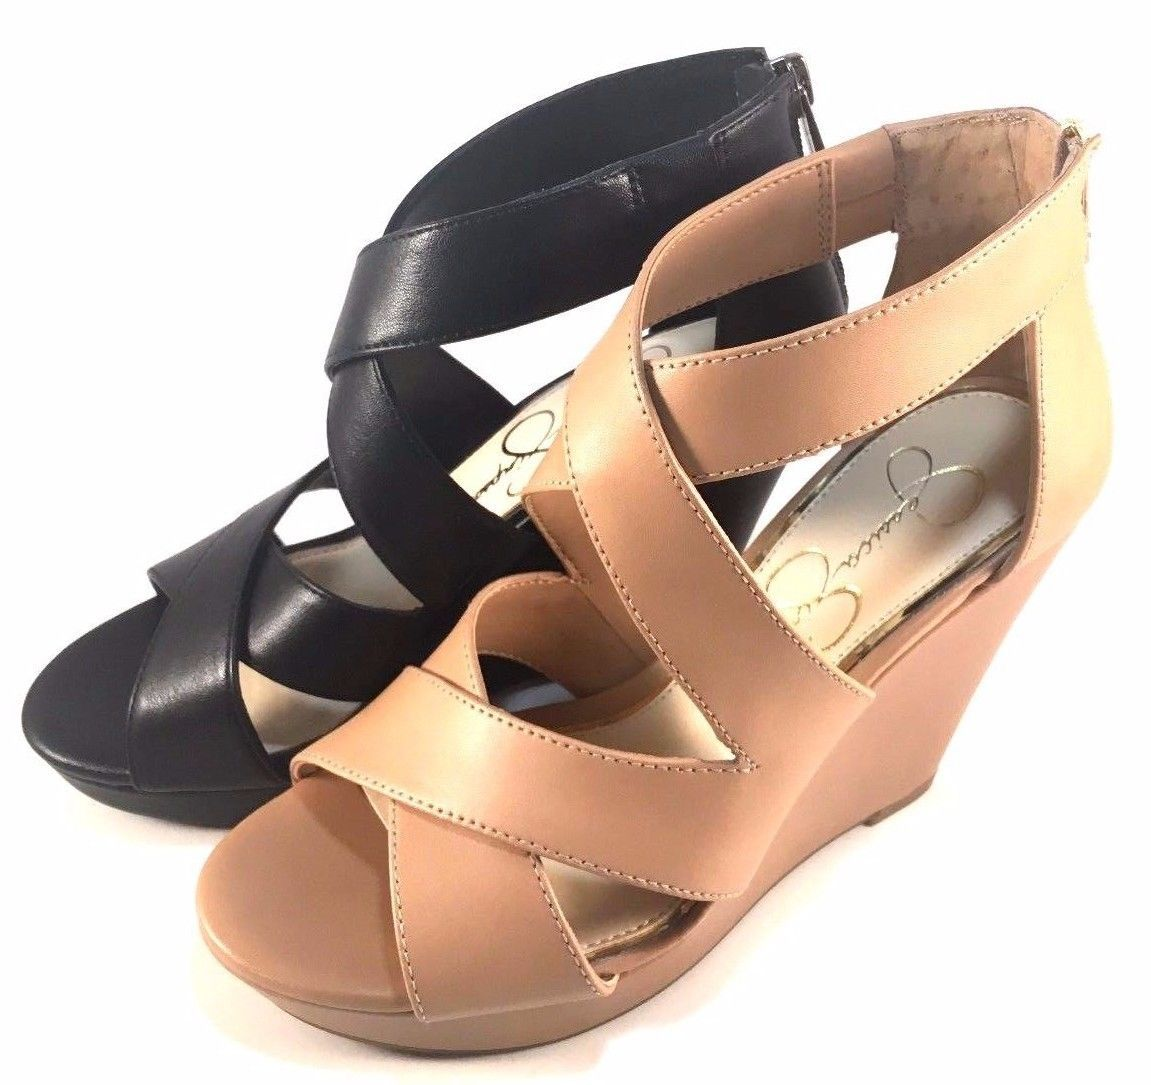 4e7b335499f S l1600. S l1600. Previous. Jessica Simpson Jenay Platform Wedge Closed  Back Strappy Sandals Choose ...